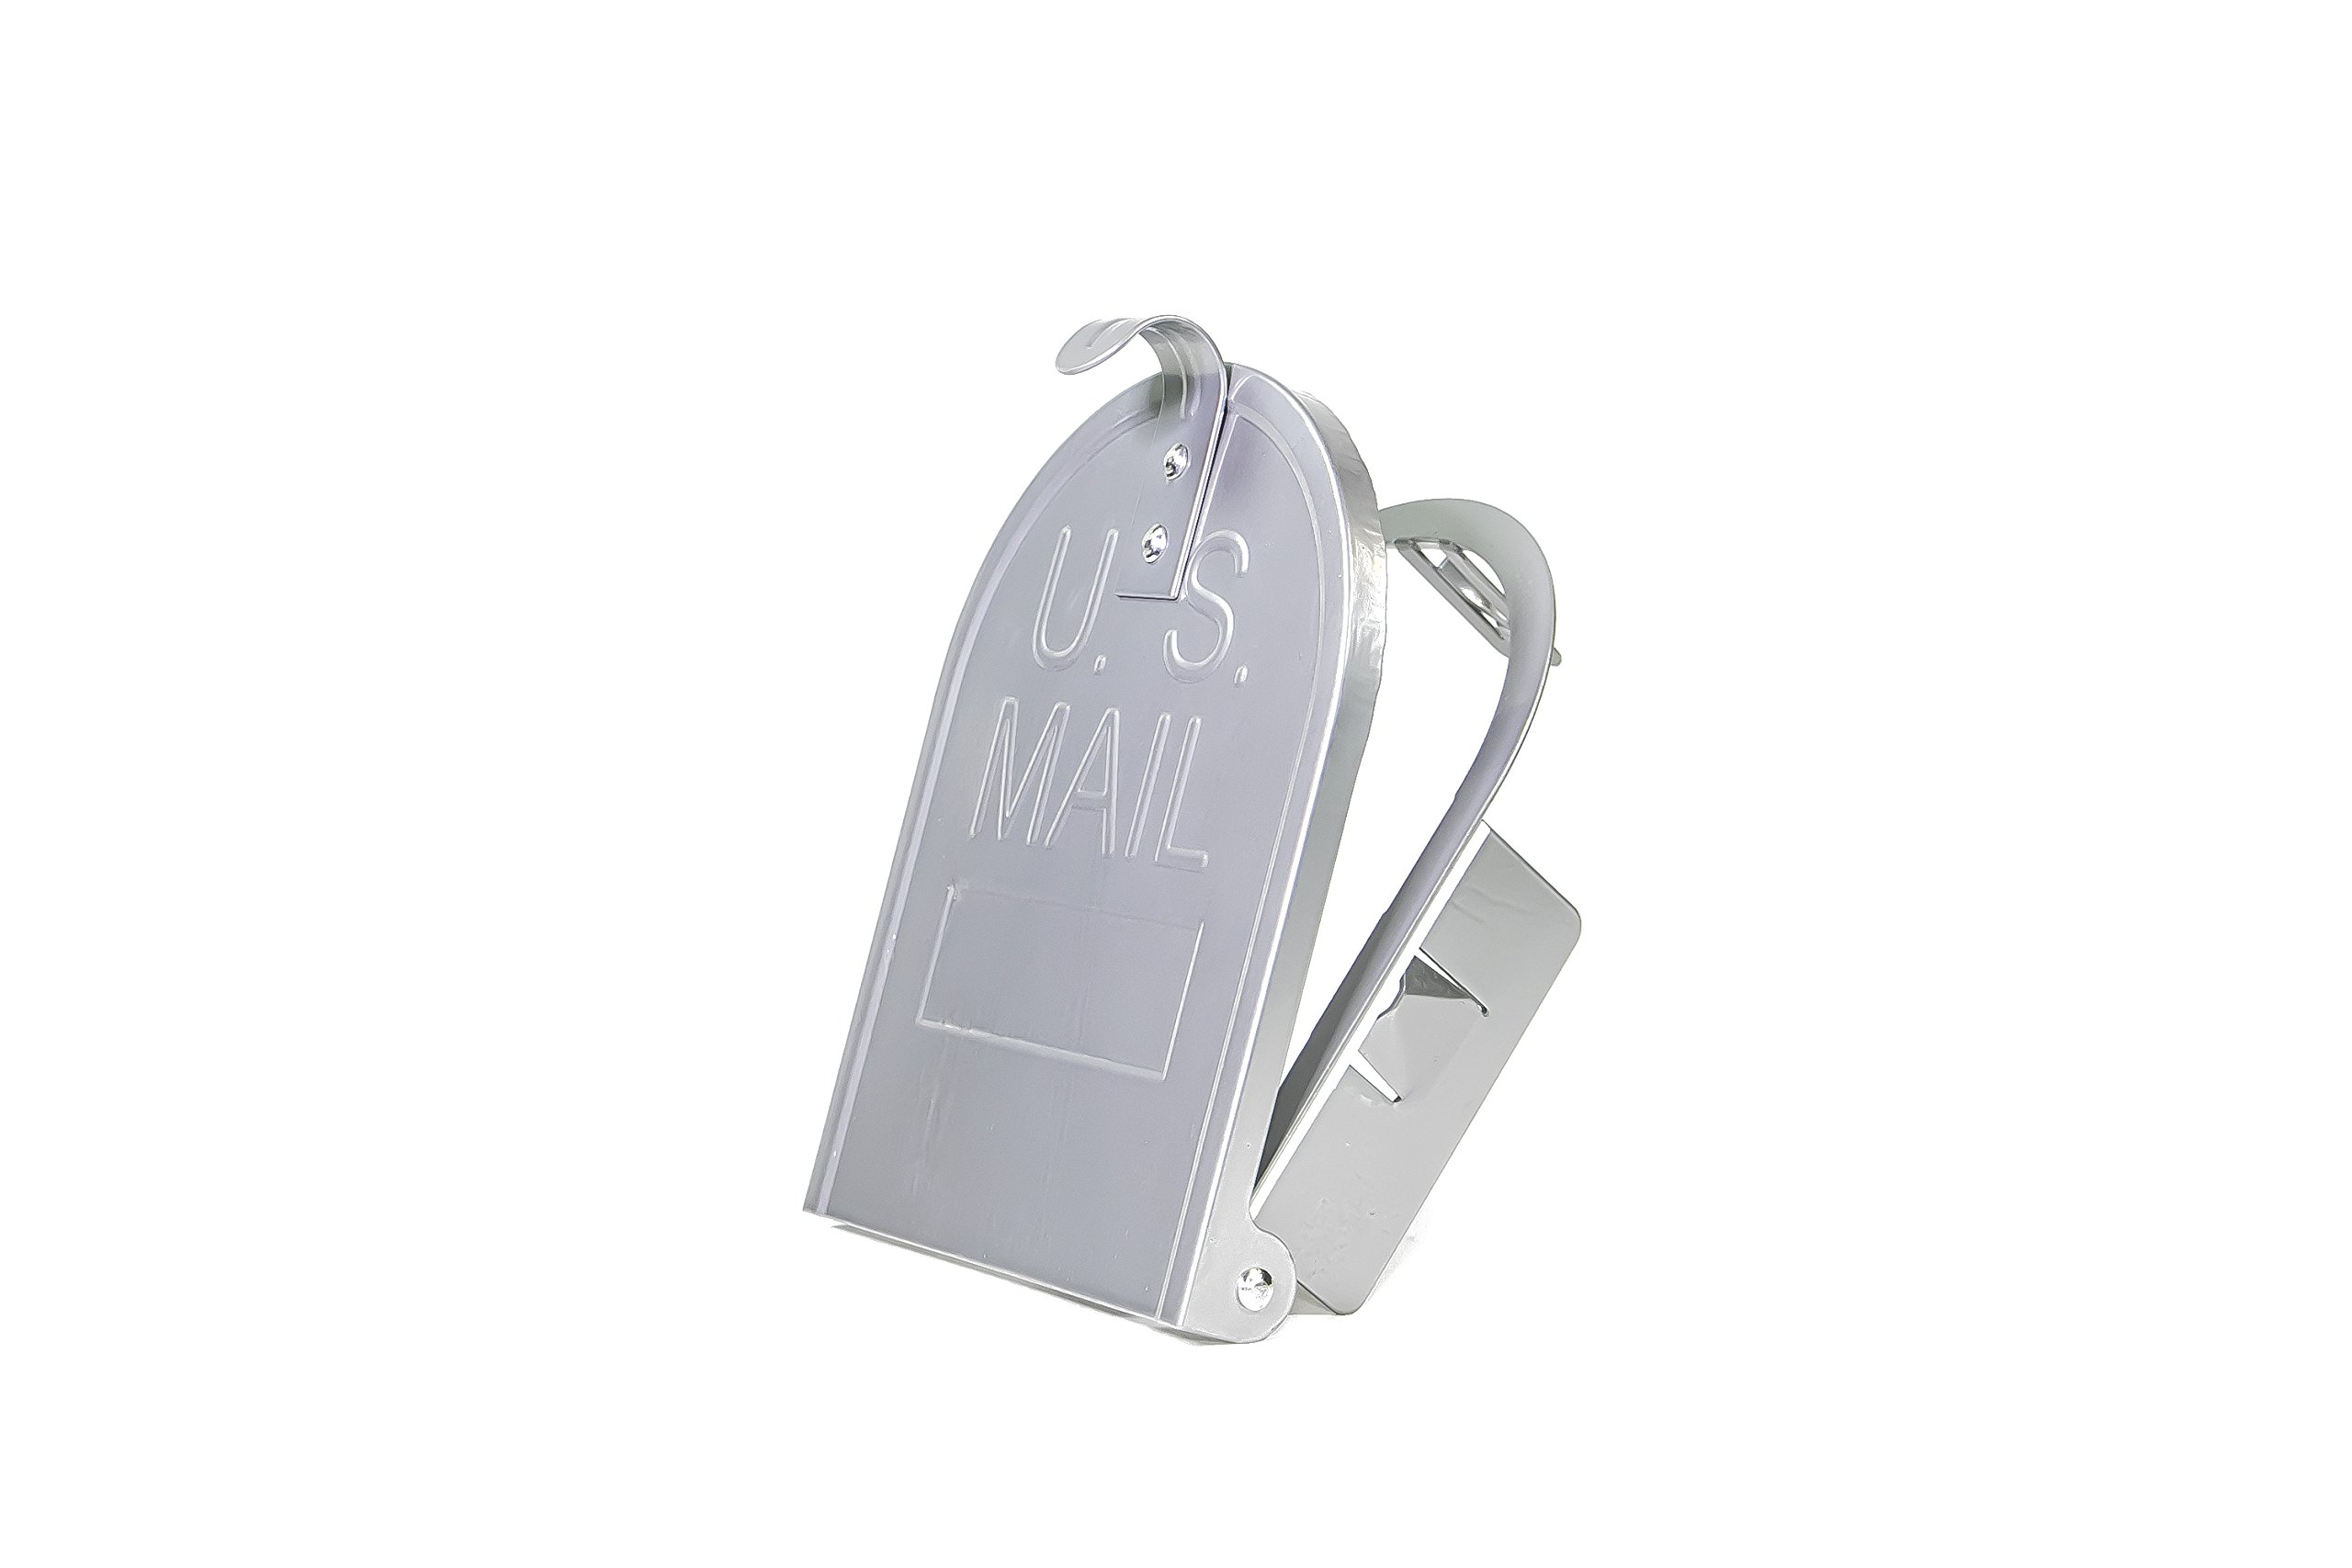 6 1/4 Inch (Width) by 8 Inch (Height) RetroFit ''Snap-In'' Mailbox Door Replacement - Natural Aluminum